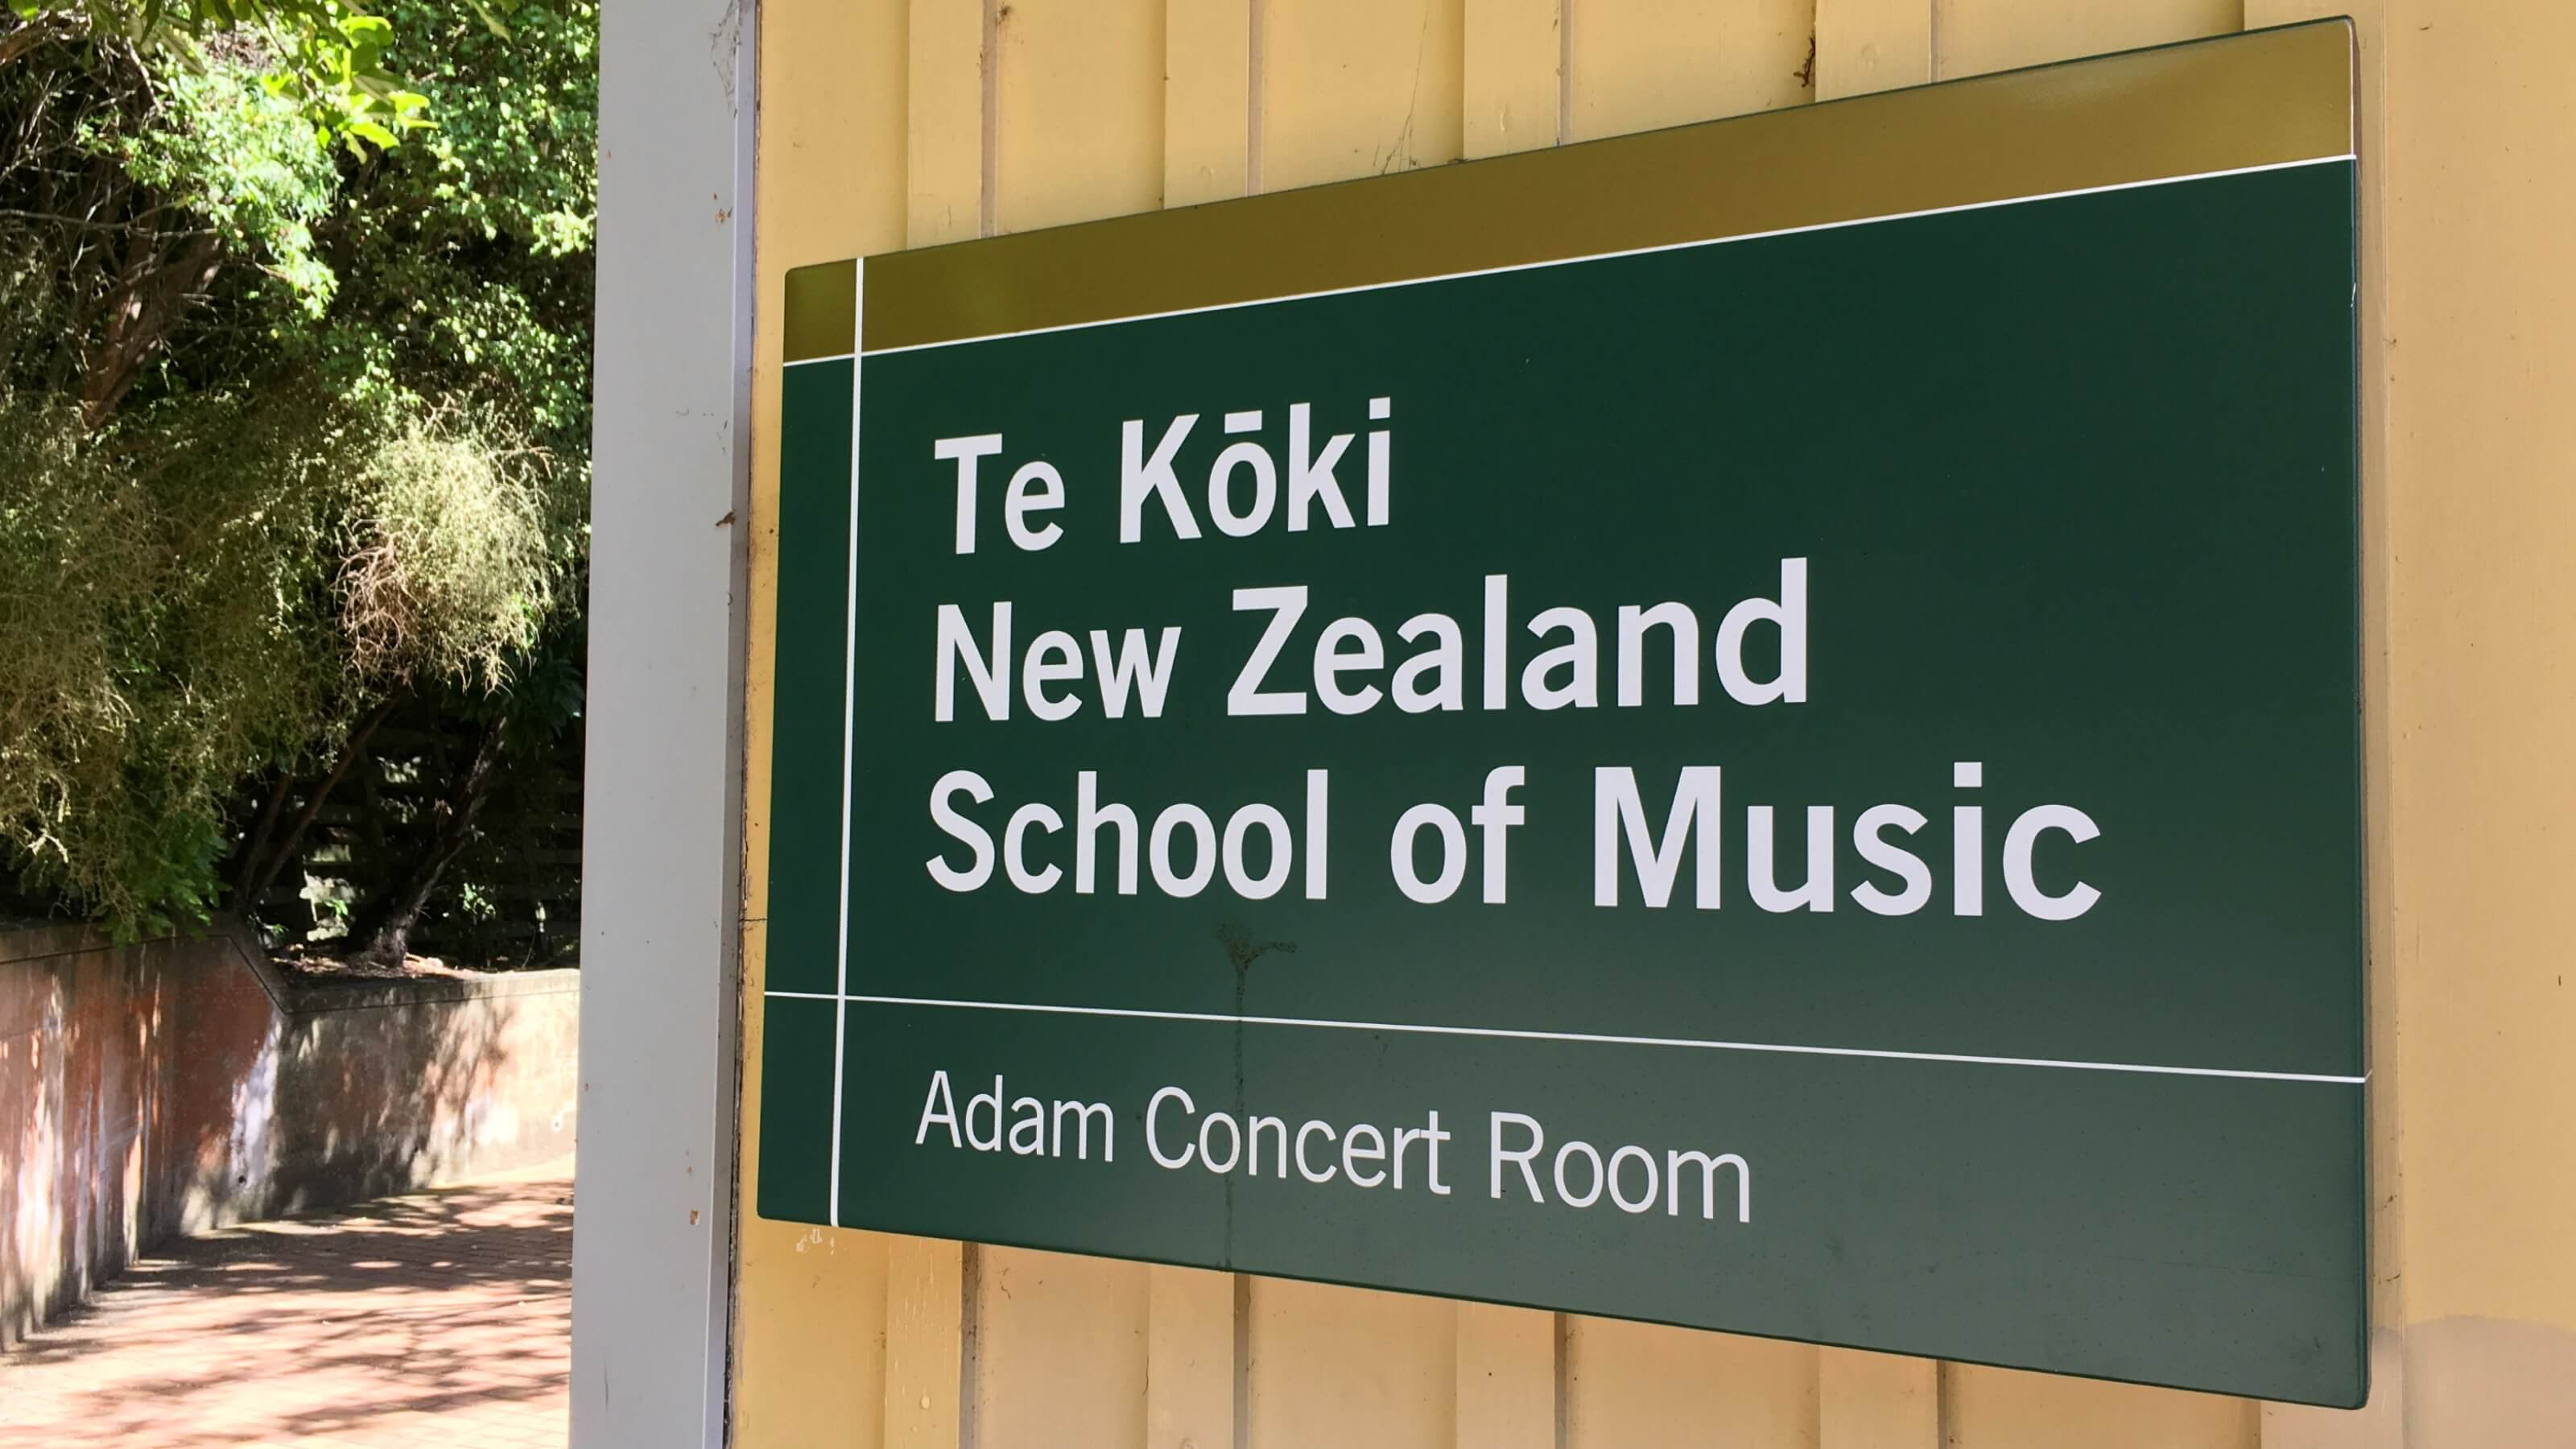 About our name - Te Kōkī New Zealand School of Music